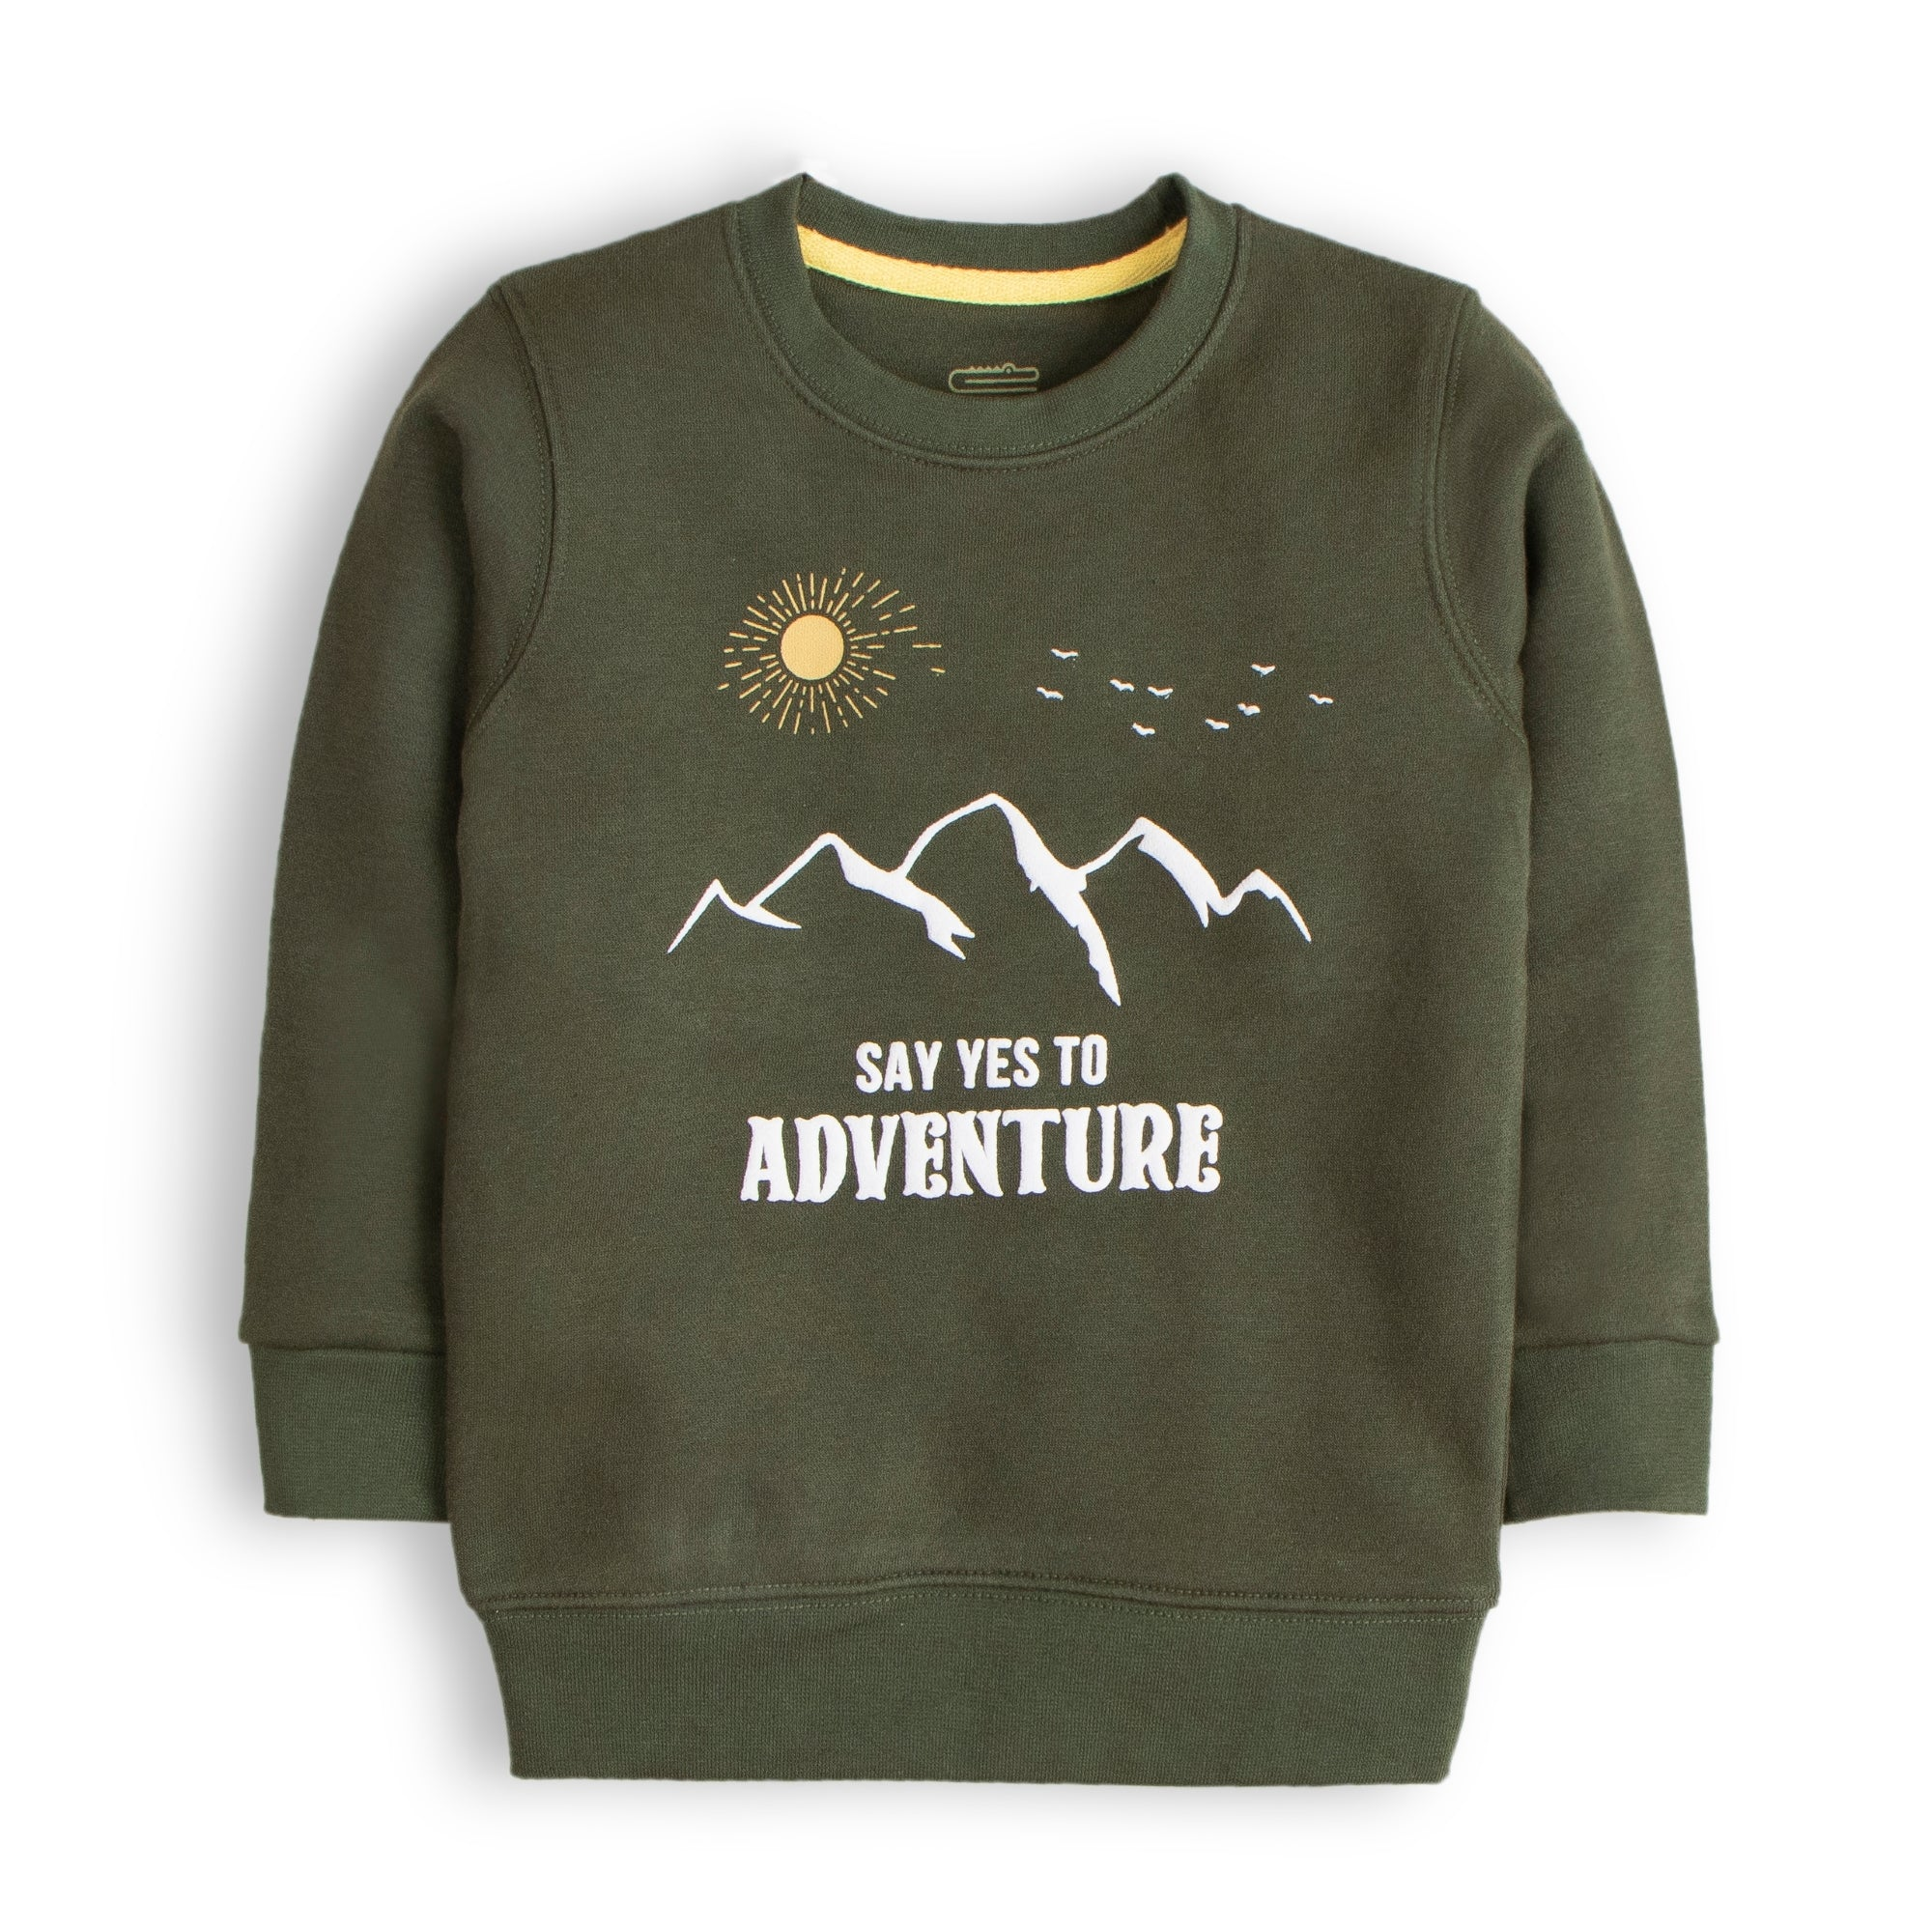 Adventurous Sweatshirt